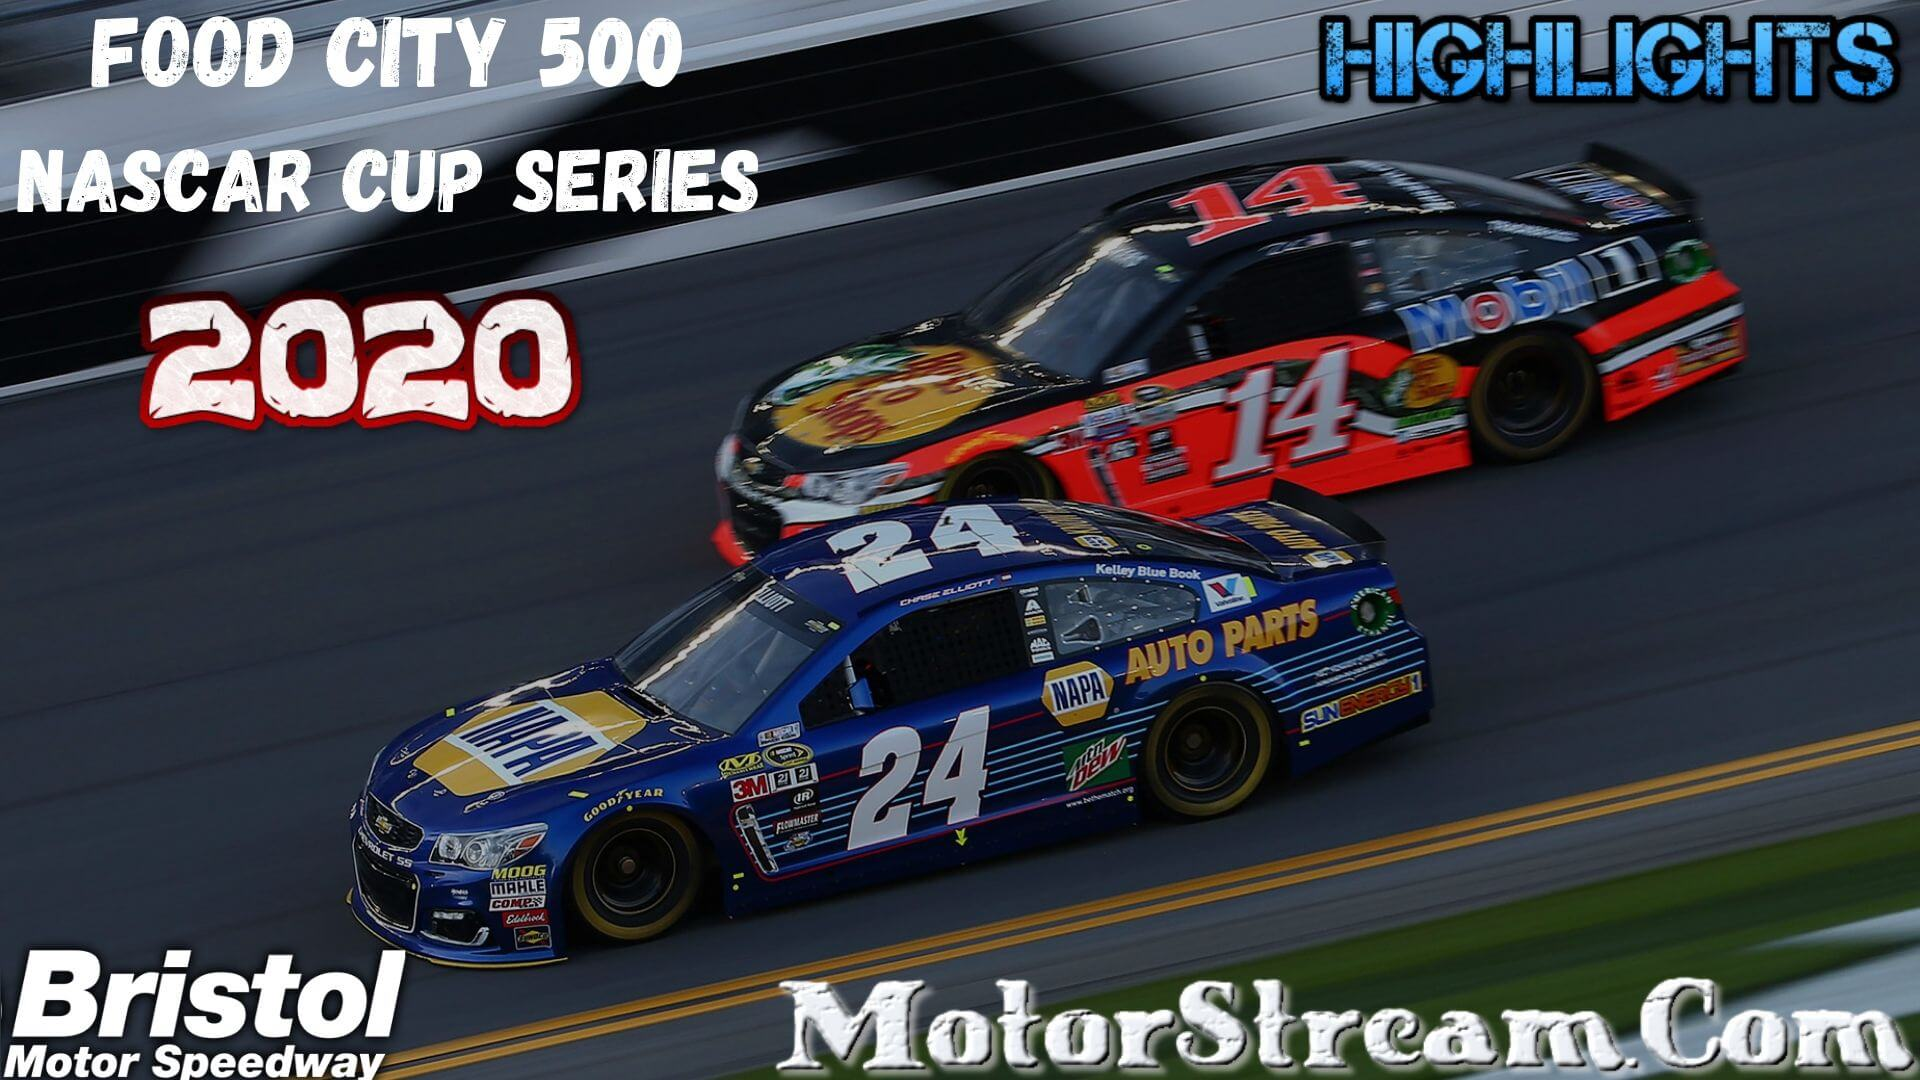 Food City 500 Highlights 2020 Cup Series